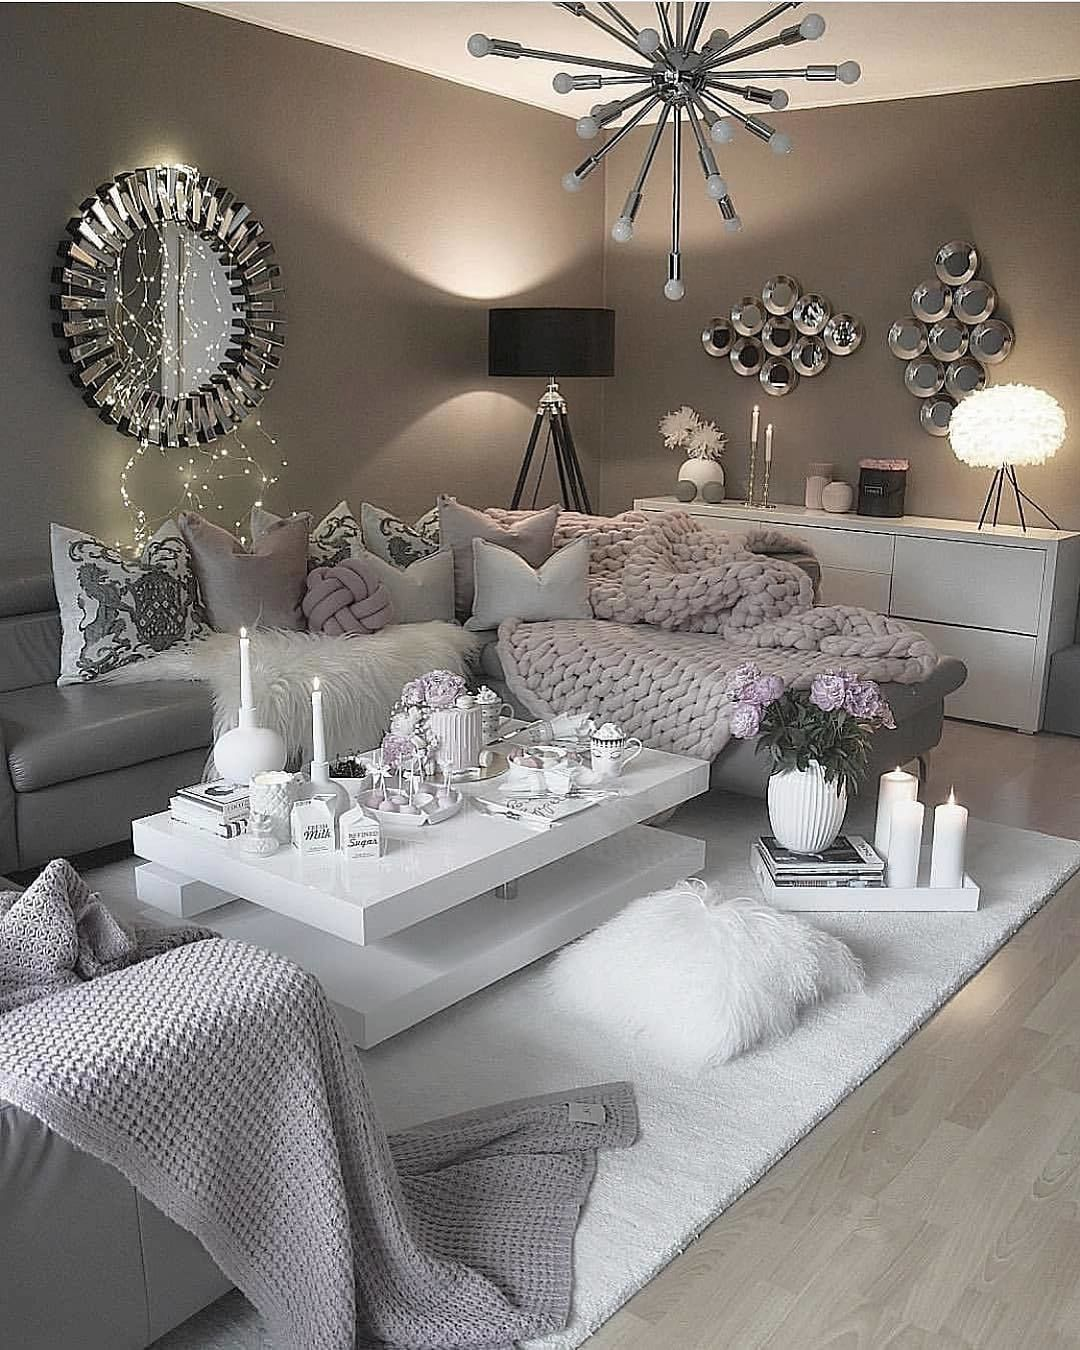 Cozy living room by zeynepshome apartment future house beautiful rooms also home decor rh pinterest